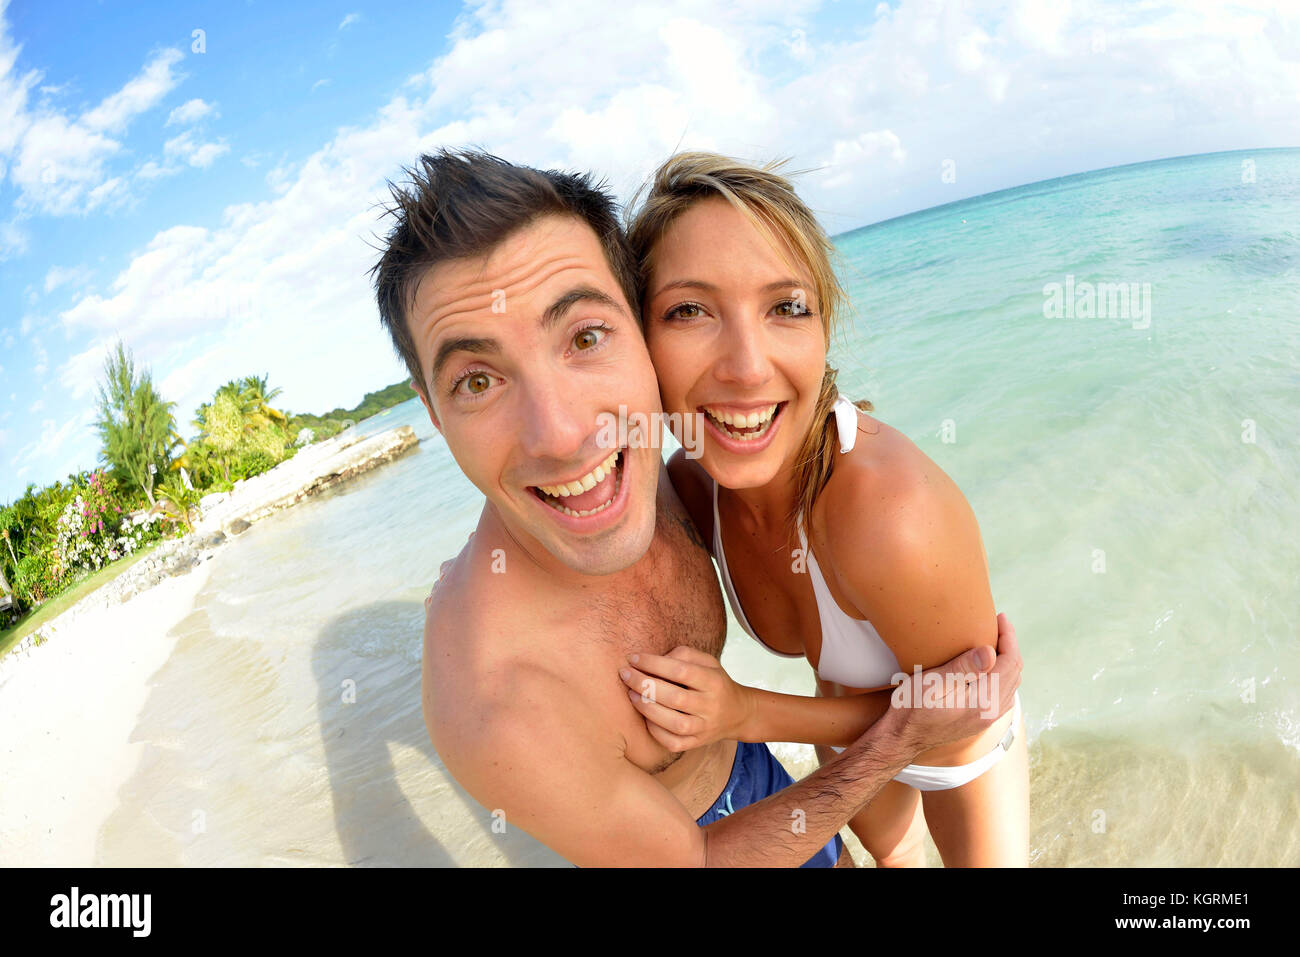 Couple having fun at the beach - Stock Image